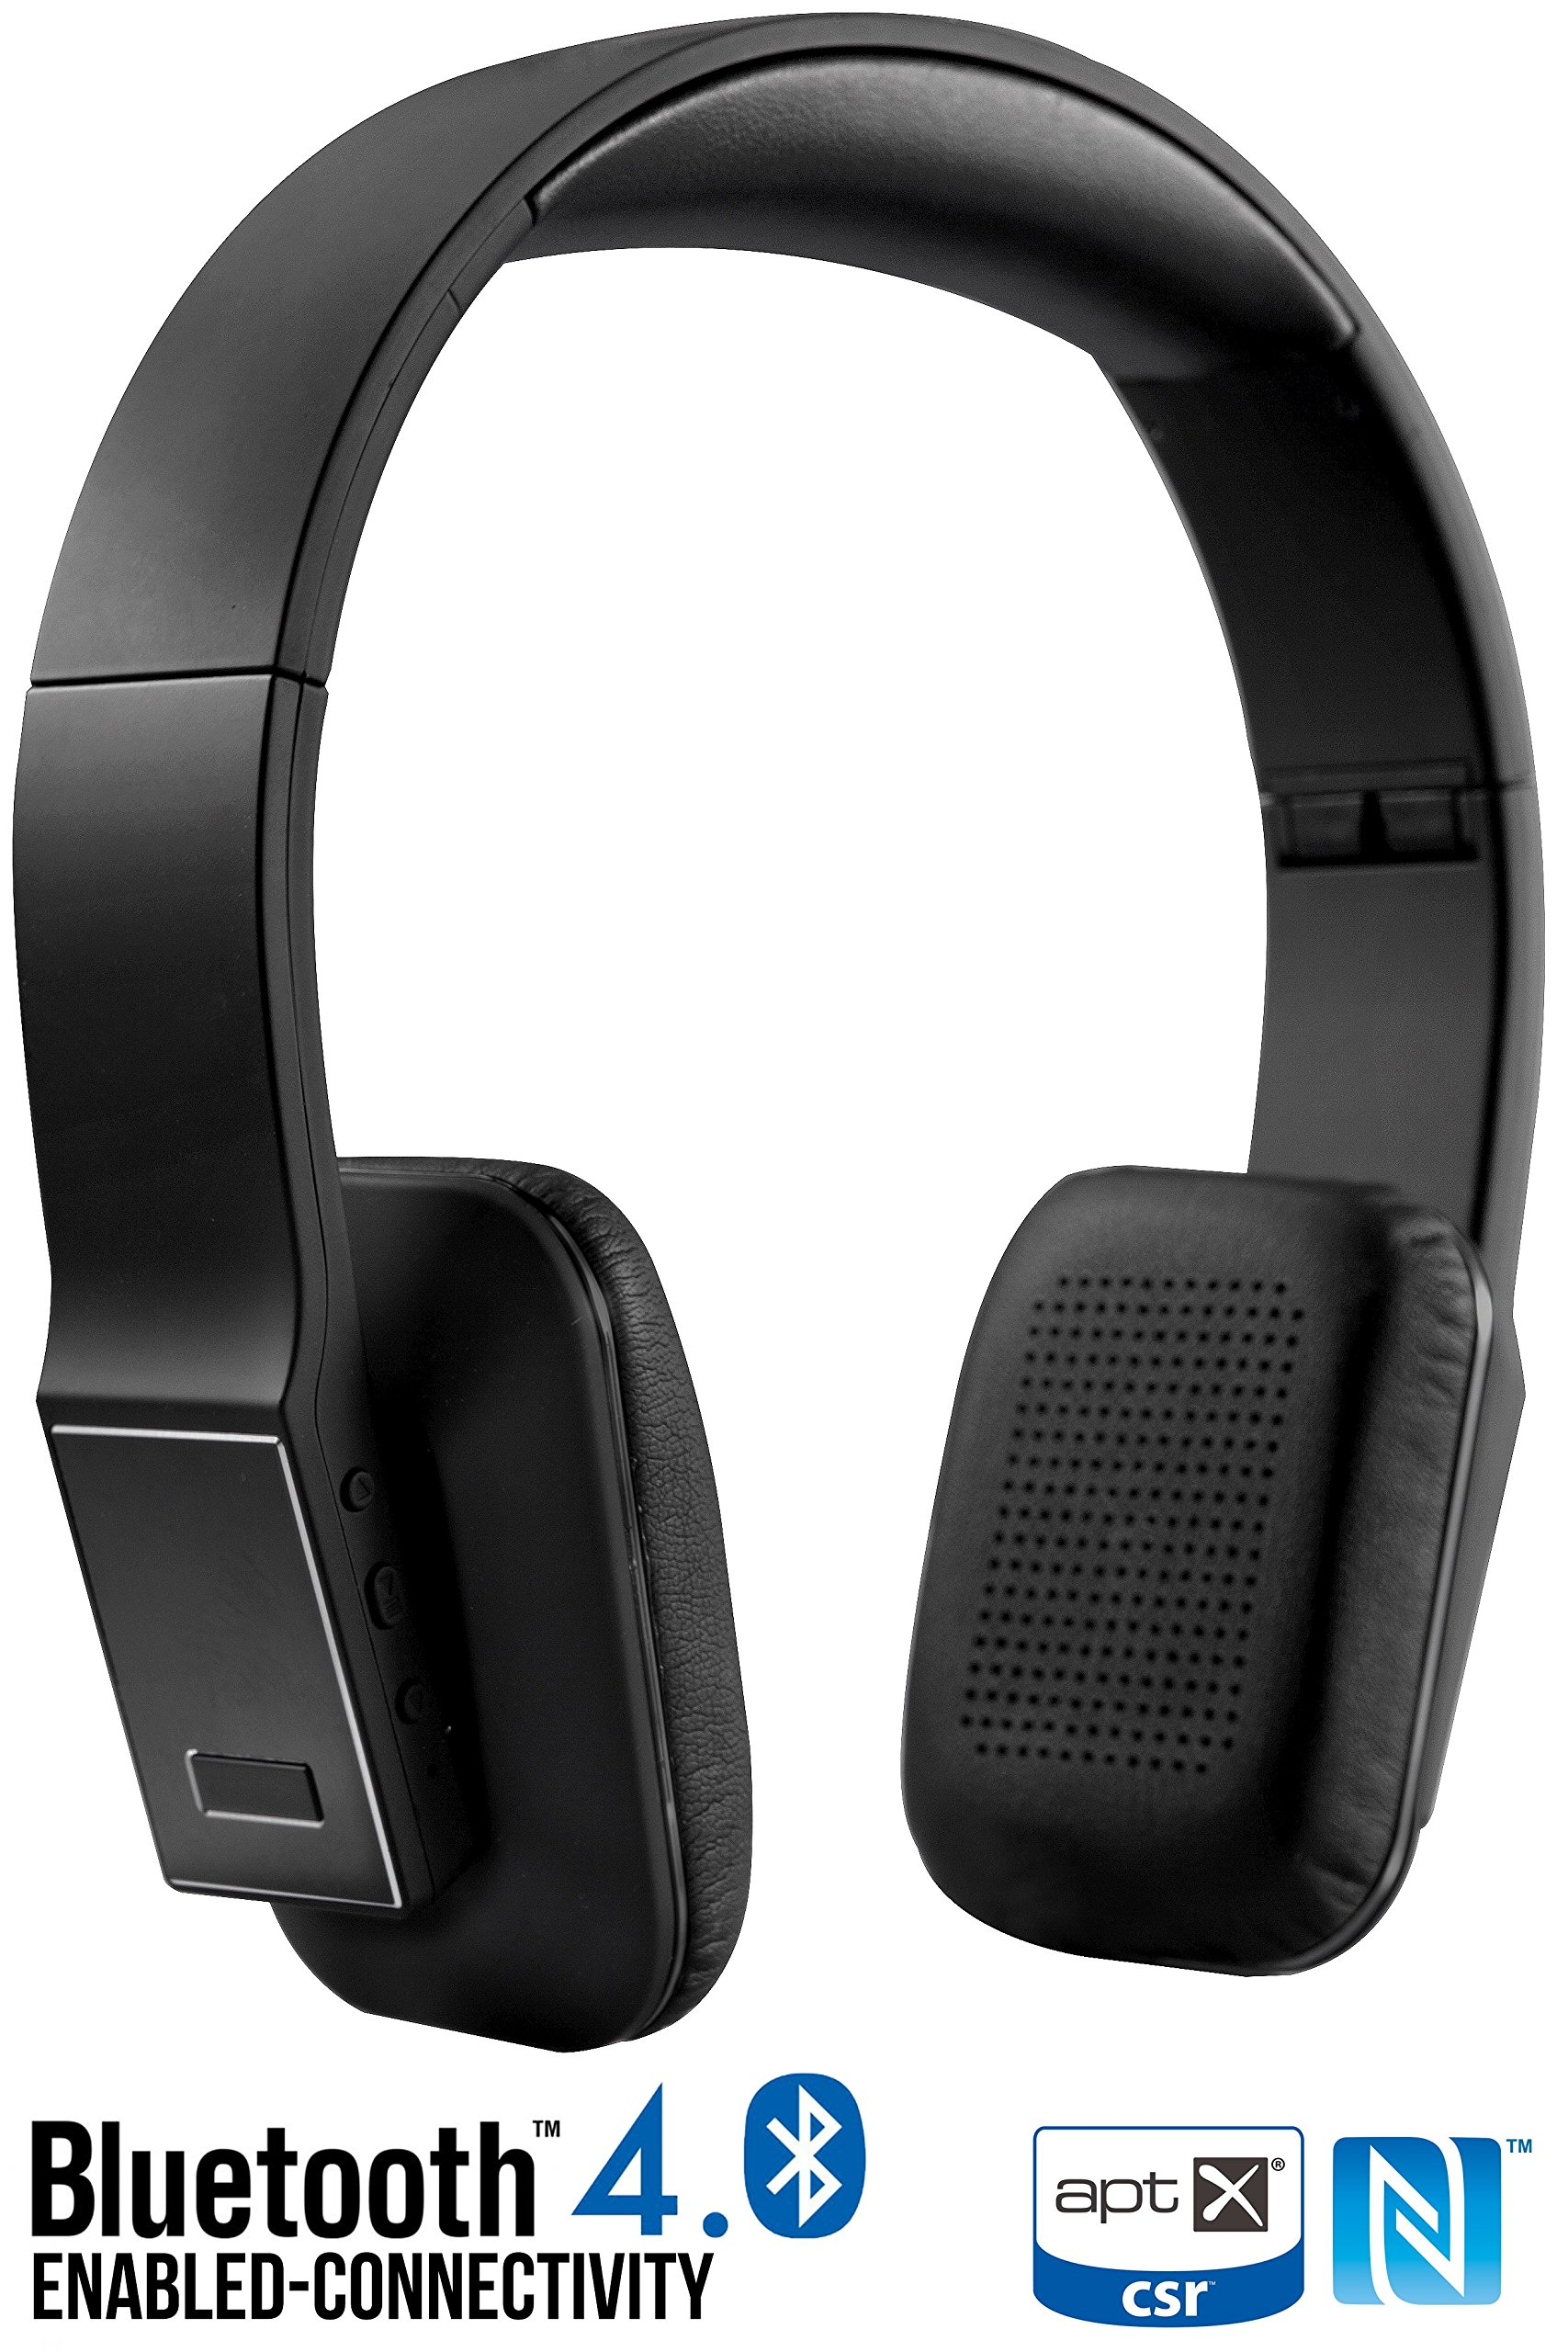 Bluetooth Headphones, Alpatronix HX110 Universal HD Noise Reduction Wireless Stereo Headset w/ Built-in Mic, NFC, aptX, Bluetooth 4.0 for Smartphones & Computers [20+ Hrs. Playback Time] - (Black)